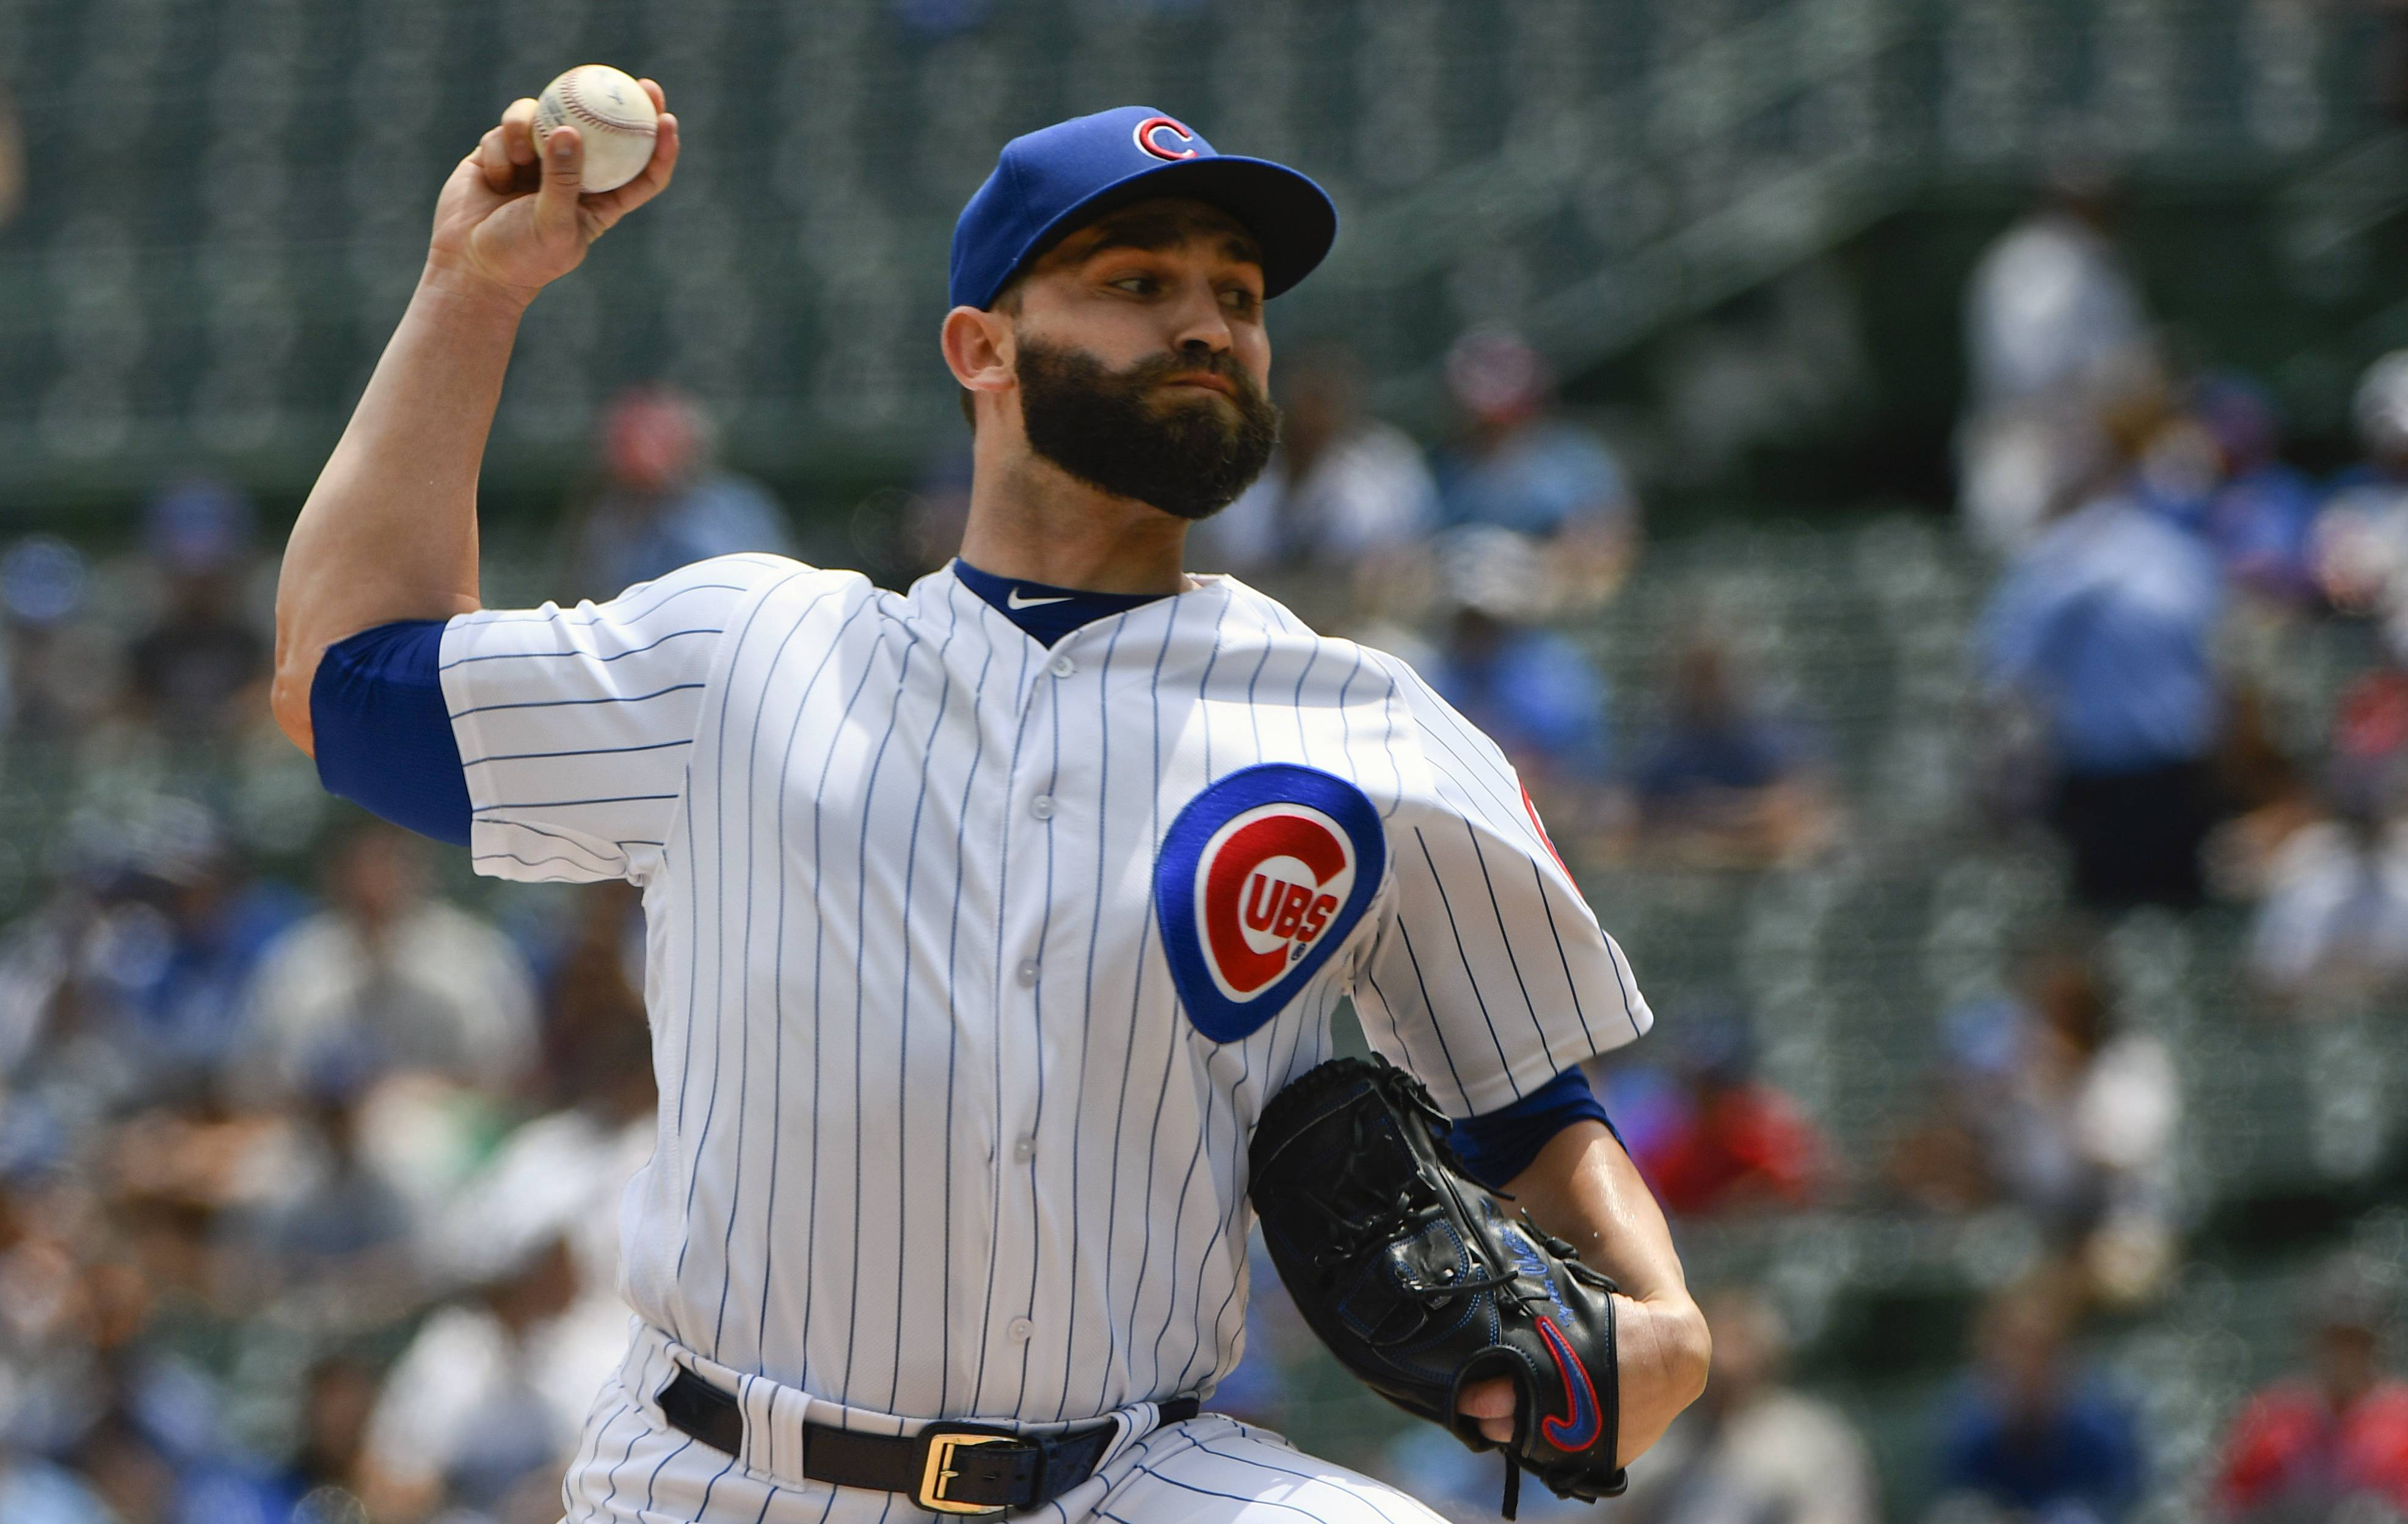 Chicago Cubs starting pitcher Tyler Chatwood (21) delivers during the first inning of a baseball game against the Los Angeles Dodgers on Tuesday, June 19, 2018, in Chicago. (AP Photo/Matt Marton)